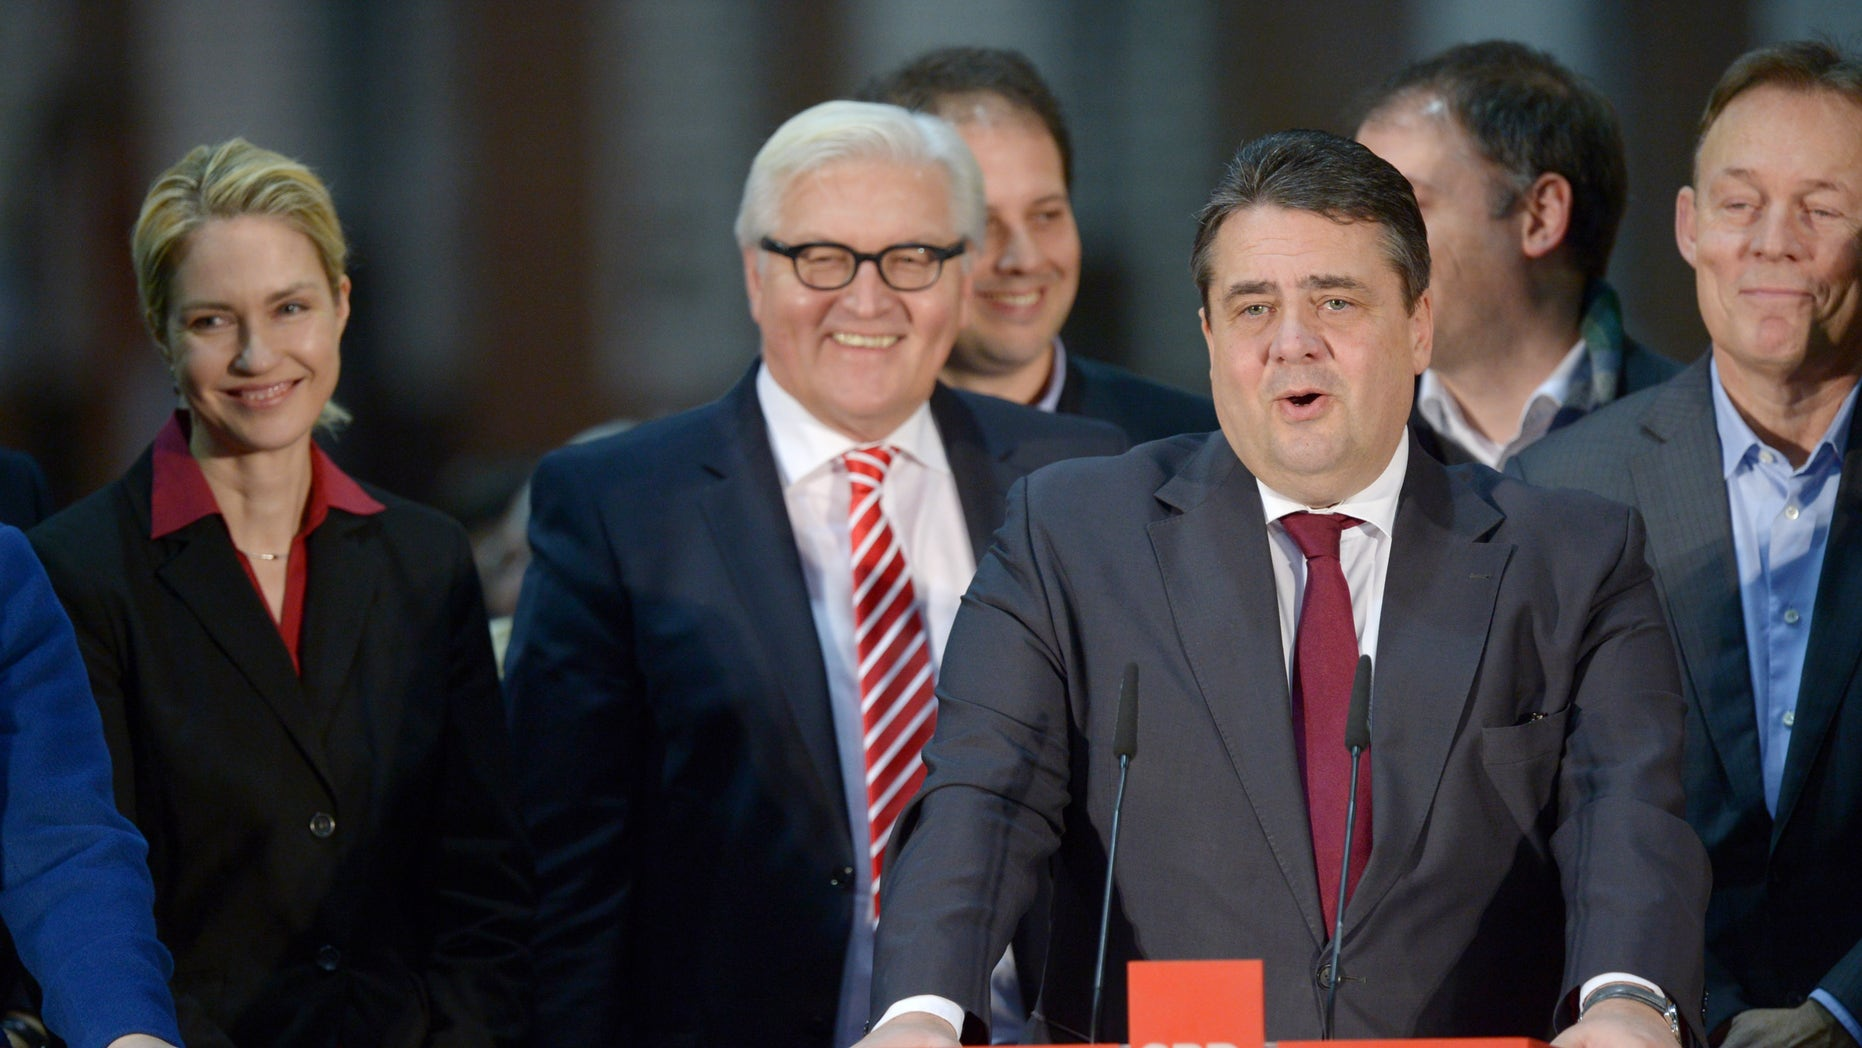 "Chairman of the  Social Democratic Party,SPD,  Sigmar Gabriel, front, a gives a statement  about  the result of the SPD member vote on the coalition agreement with Angela Merkel's  Christian Union Parties'  bloc in Berlin, Germany, Saturday Dec. 14, 2013.  Second left stands former foreign minister Frank-Walter Steimeier., at right Chief Whip Thomas Oppermann, attend.  Germany's main center-left party cleared the way on Saturday for Angela Merkel to start her third term as chancellor, announcing that its members had voted by a large majority to join the conservative leader in government.  Some 76 percent of members who took part approved a deal to form a ""grand coalition"" government of right and left under Merkel and about 24 percent voted against. (AP Photo/dpa, Rainer Jensen)"